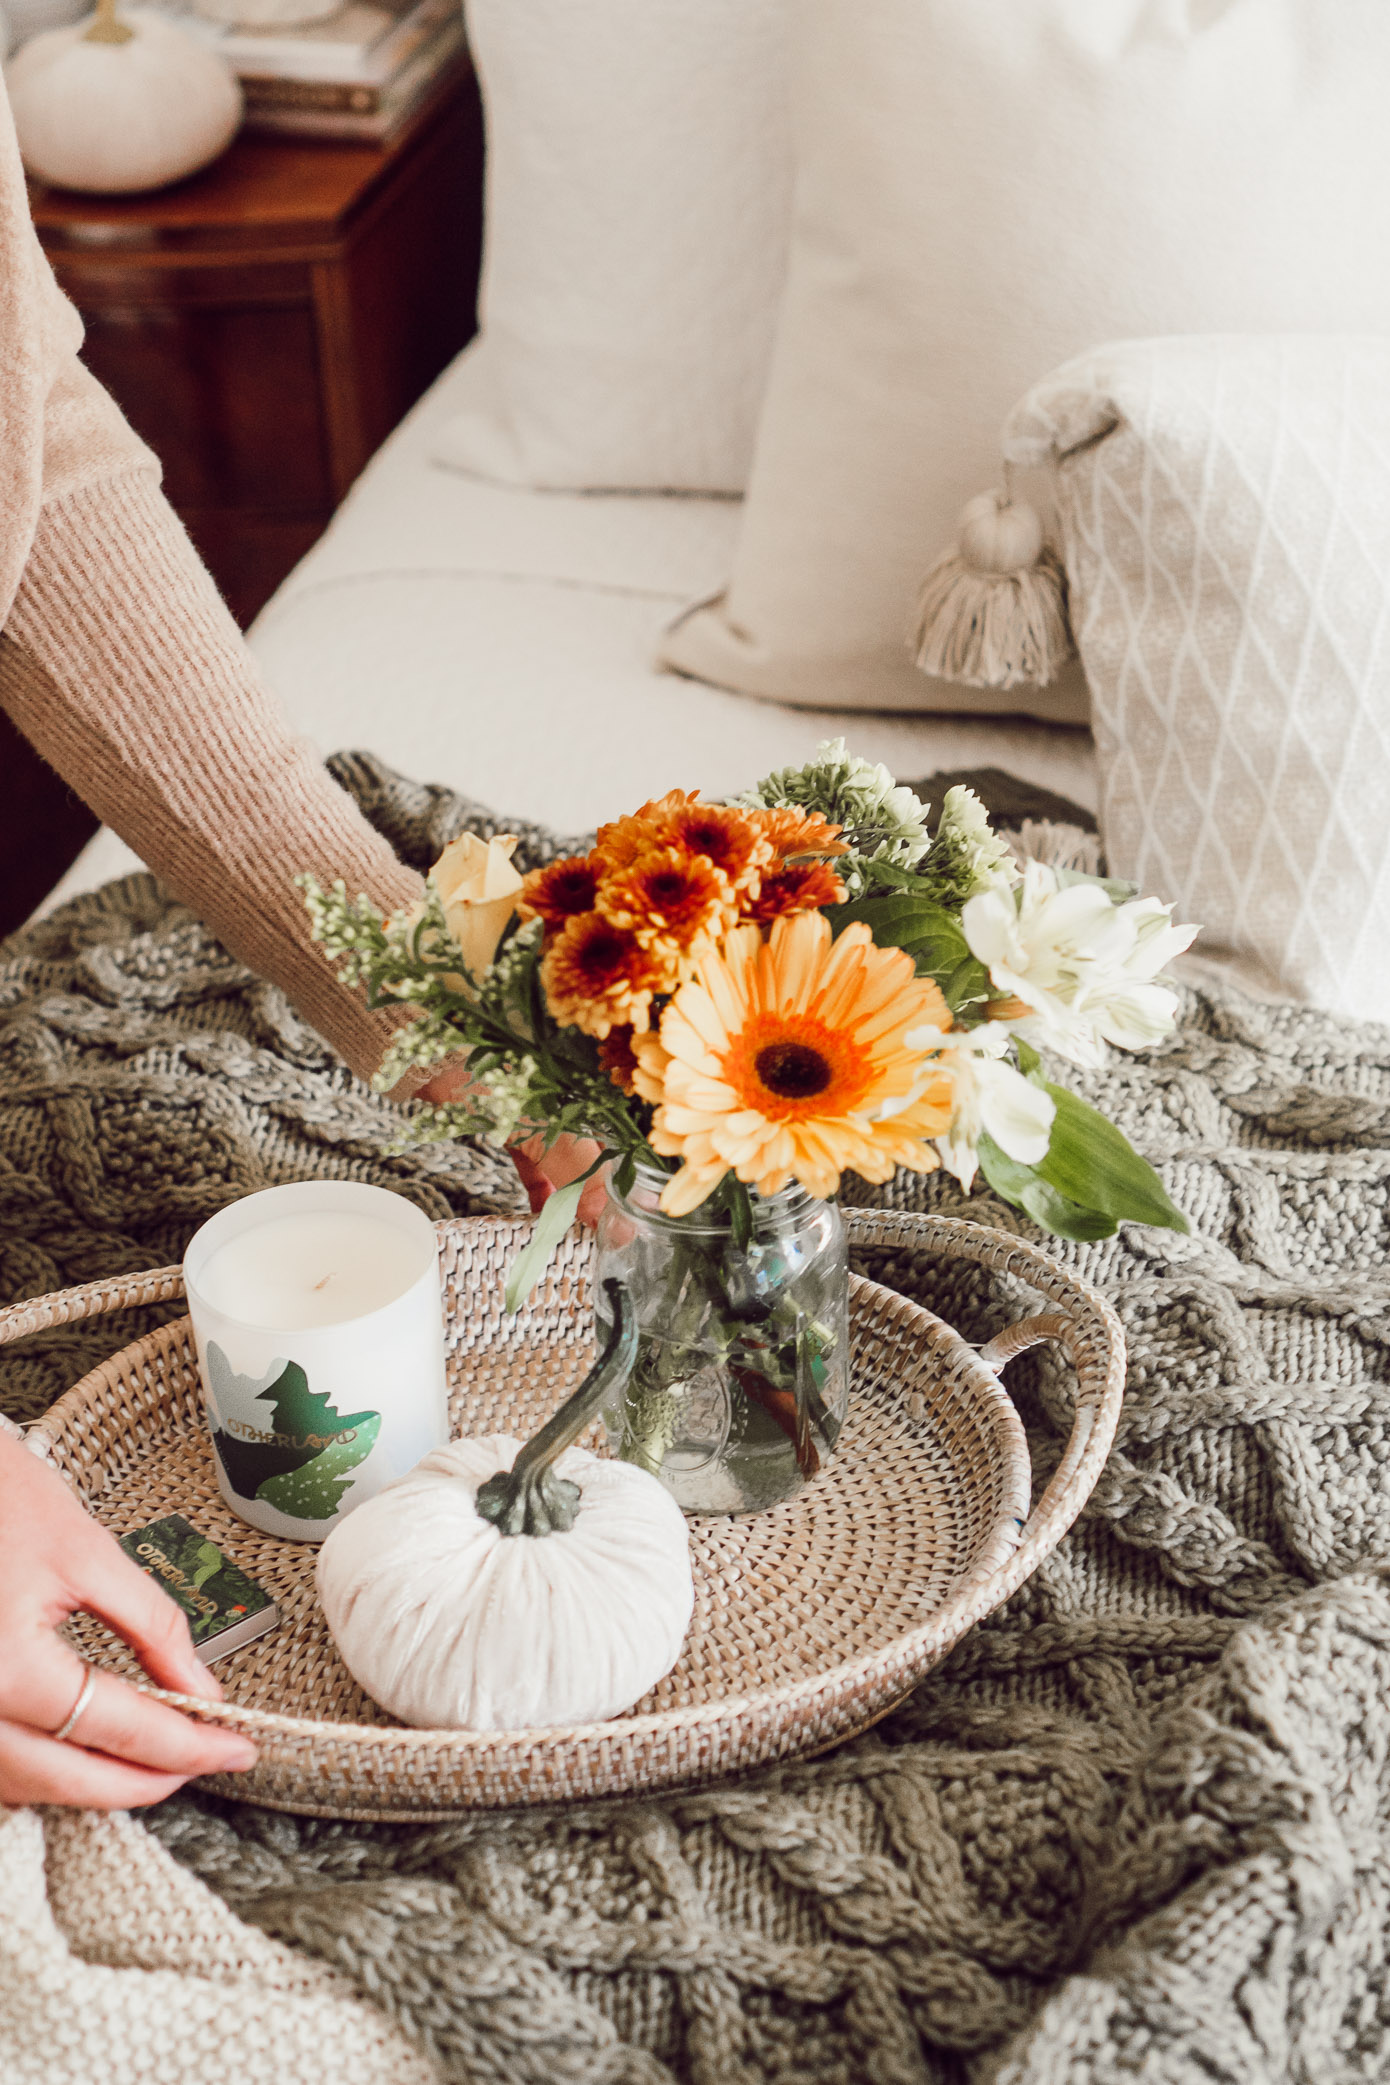 Fall Florals, Neutral Fall Bedroom Decor | 4 Essentials For Making Your Bedroom Fall Ready - Louella Reese Blog